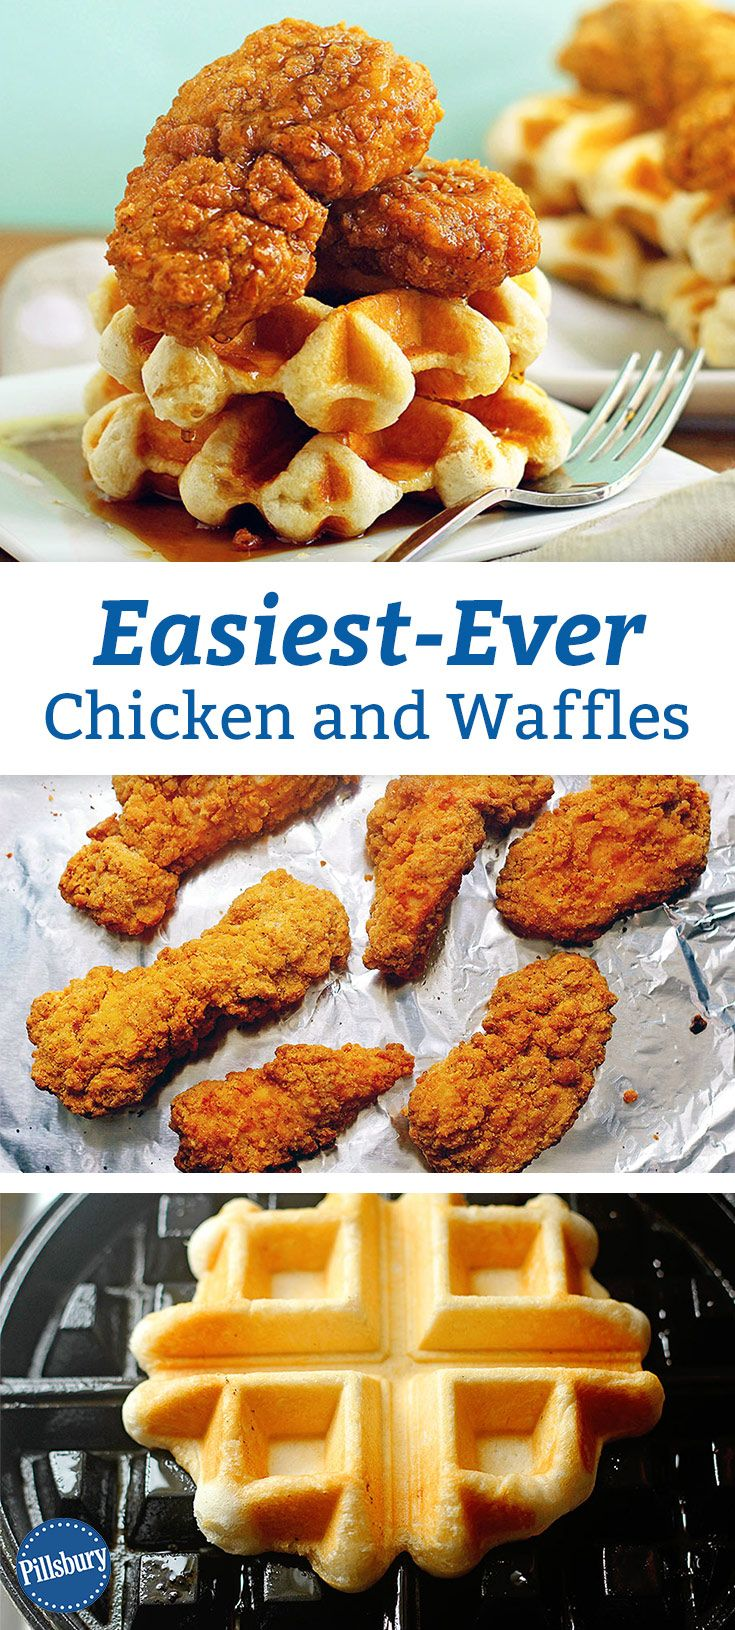 Chicken and Waffles doesn't get any easier! Savor this southern classic with just a few ingredients and barely any work.